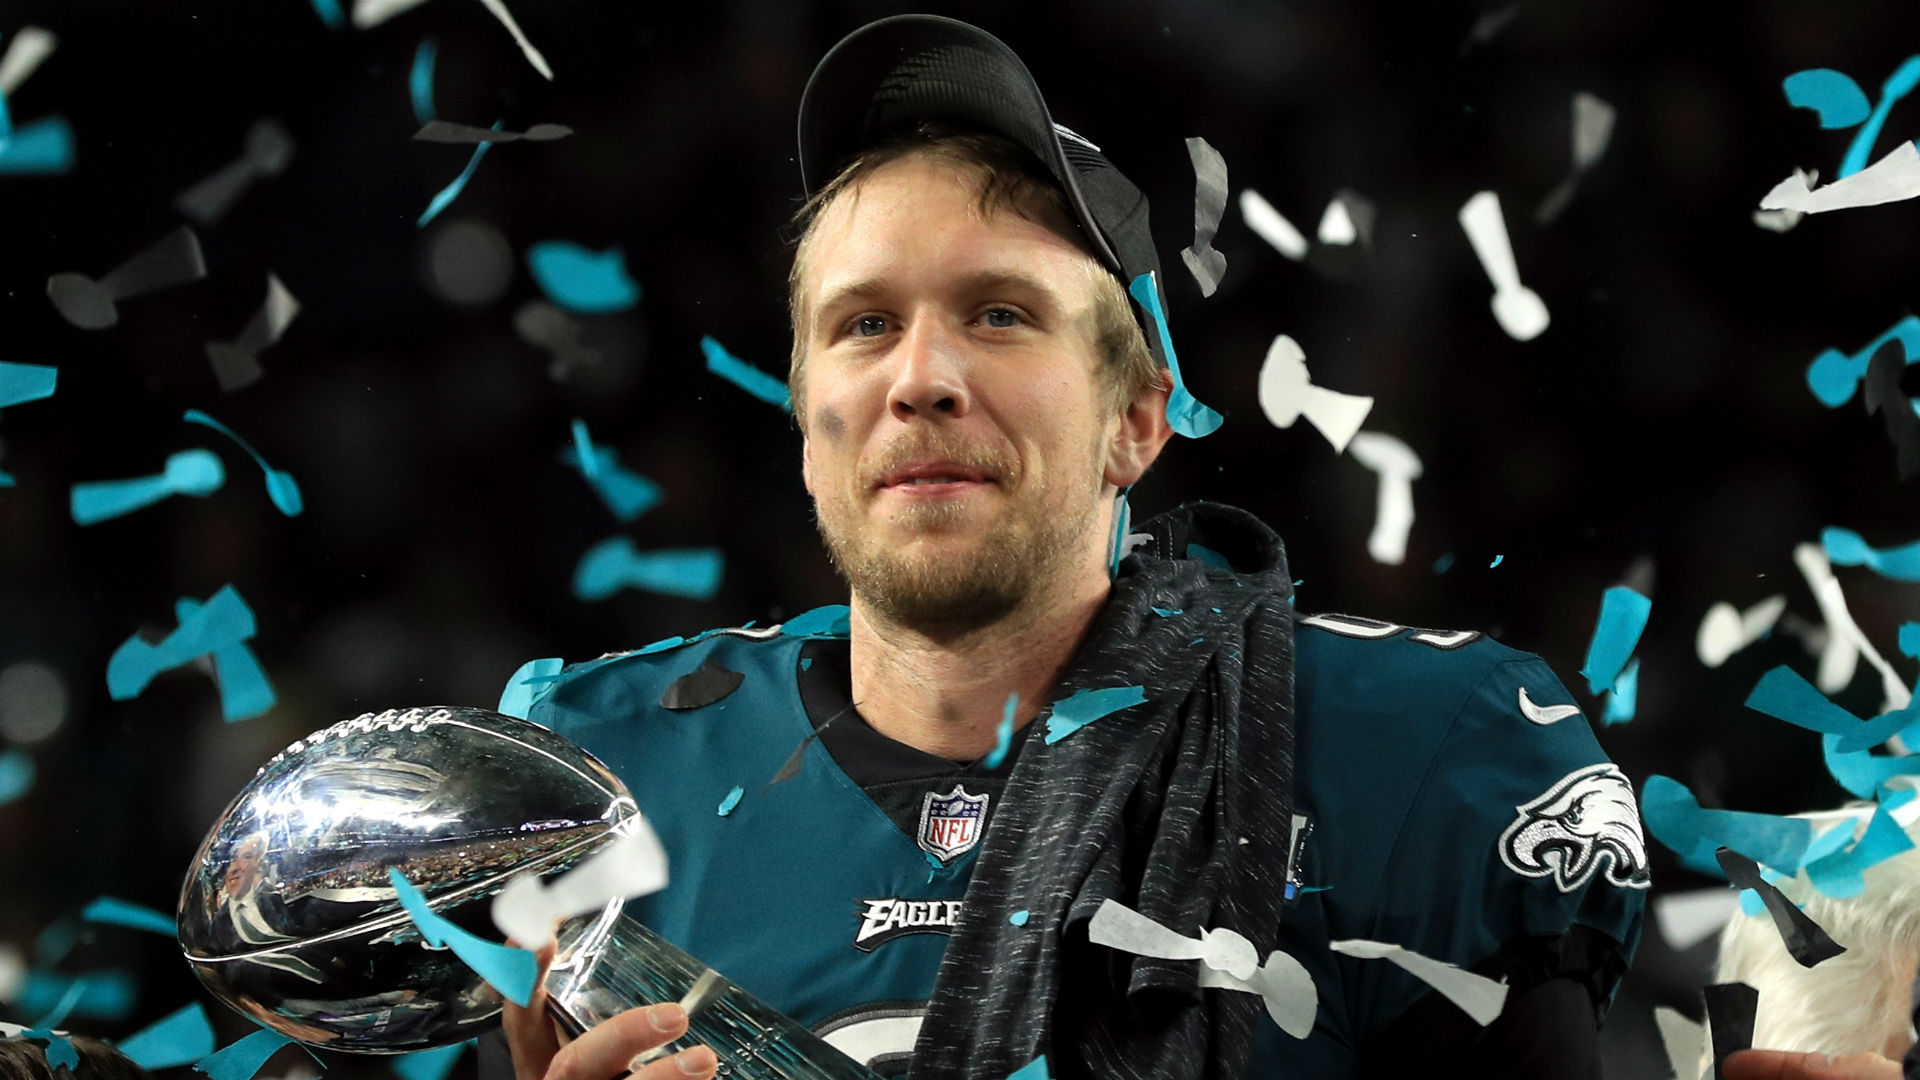 Eagles to restructure contract for former Wildcat Foles